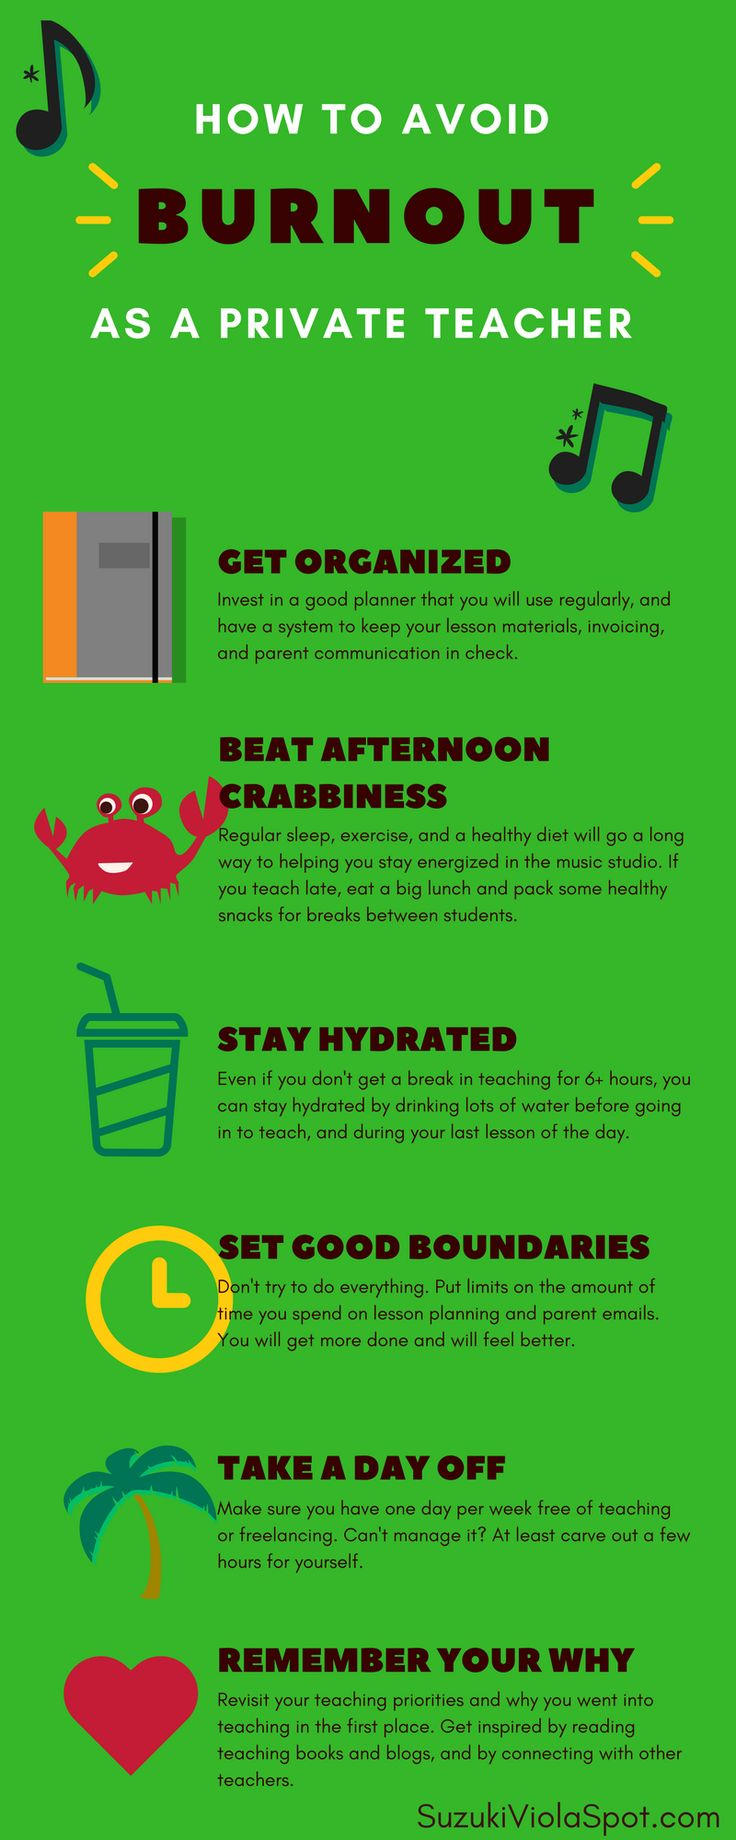 Private teachers work hard! Remember to take care of yourself with these tips to stay energized through a long teaching day.